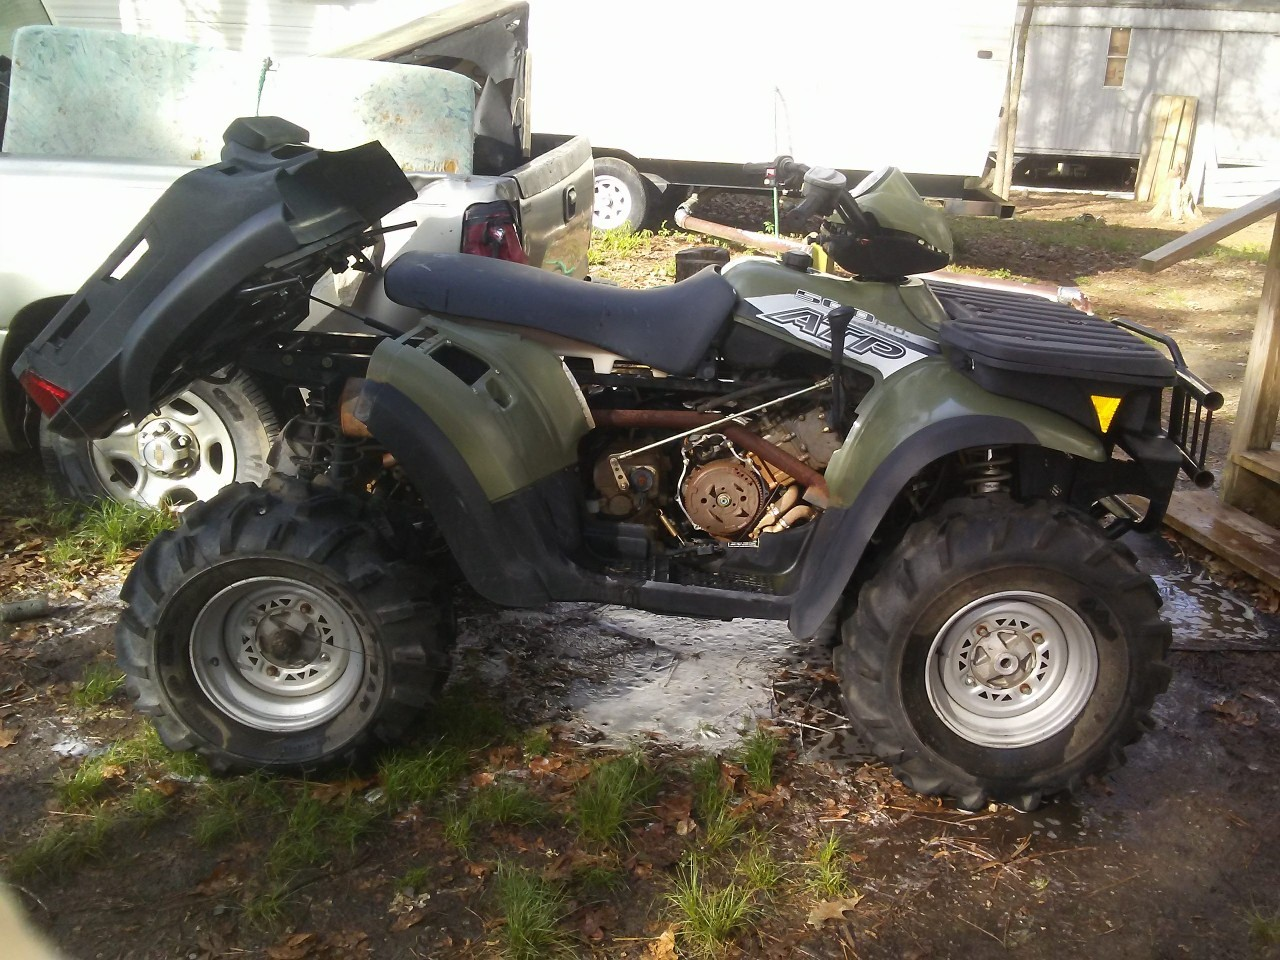 Used 500 4X4 For Sale - Polaris ATV,Side by Side,Sand Rail,Golf